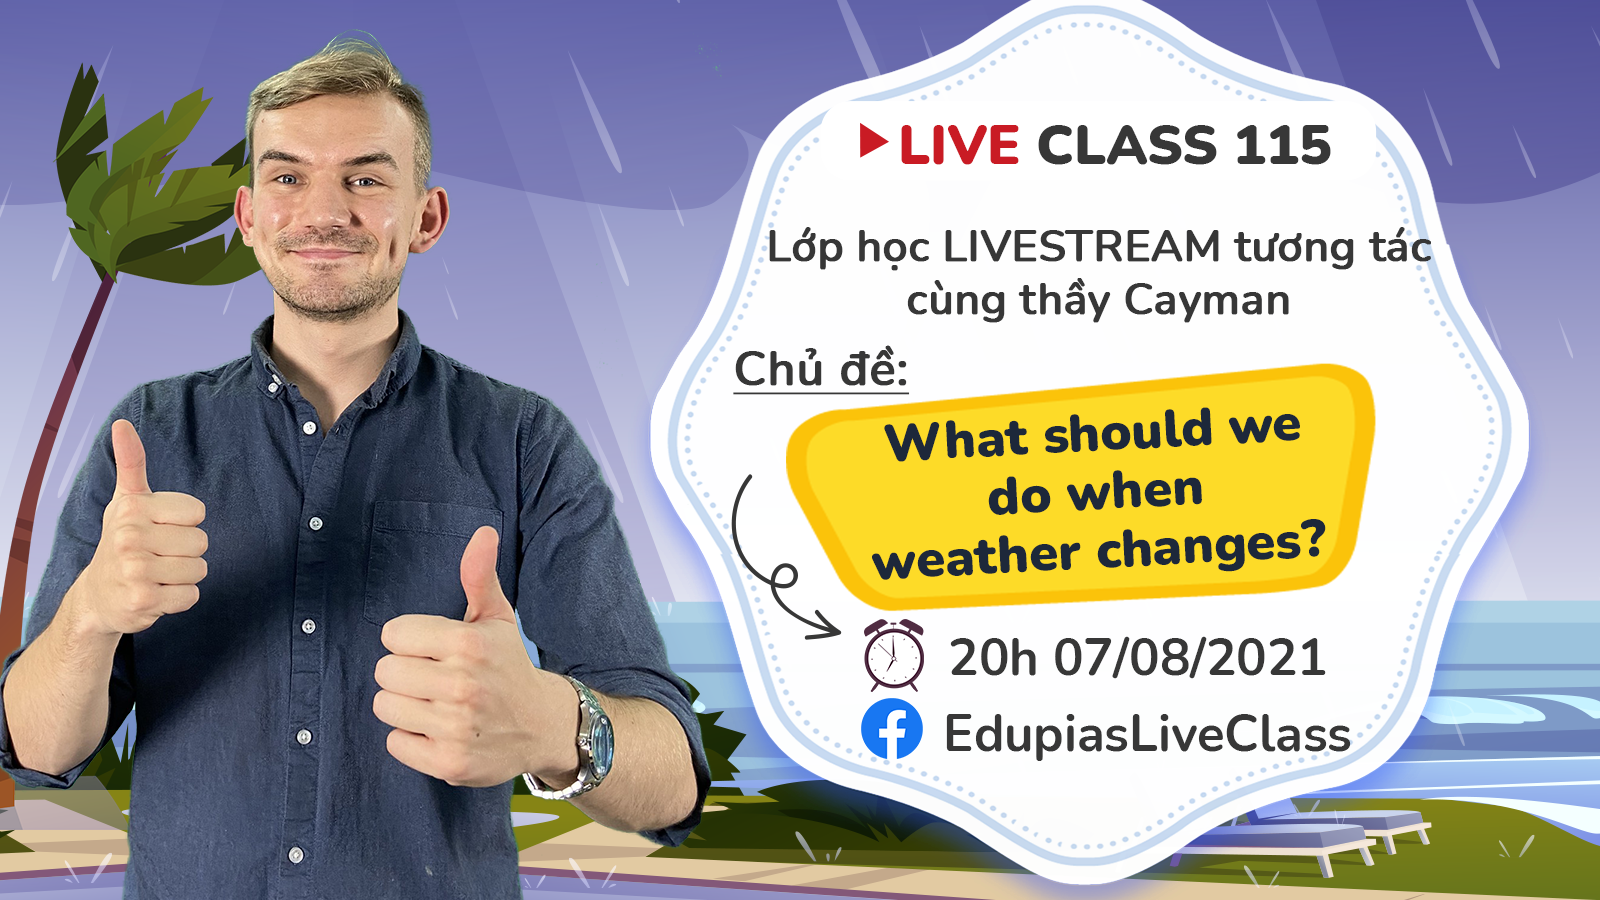 Live class tuần 115 - Chủ đề: What should we do when weather changes?